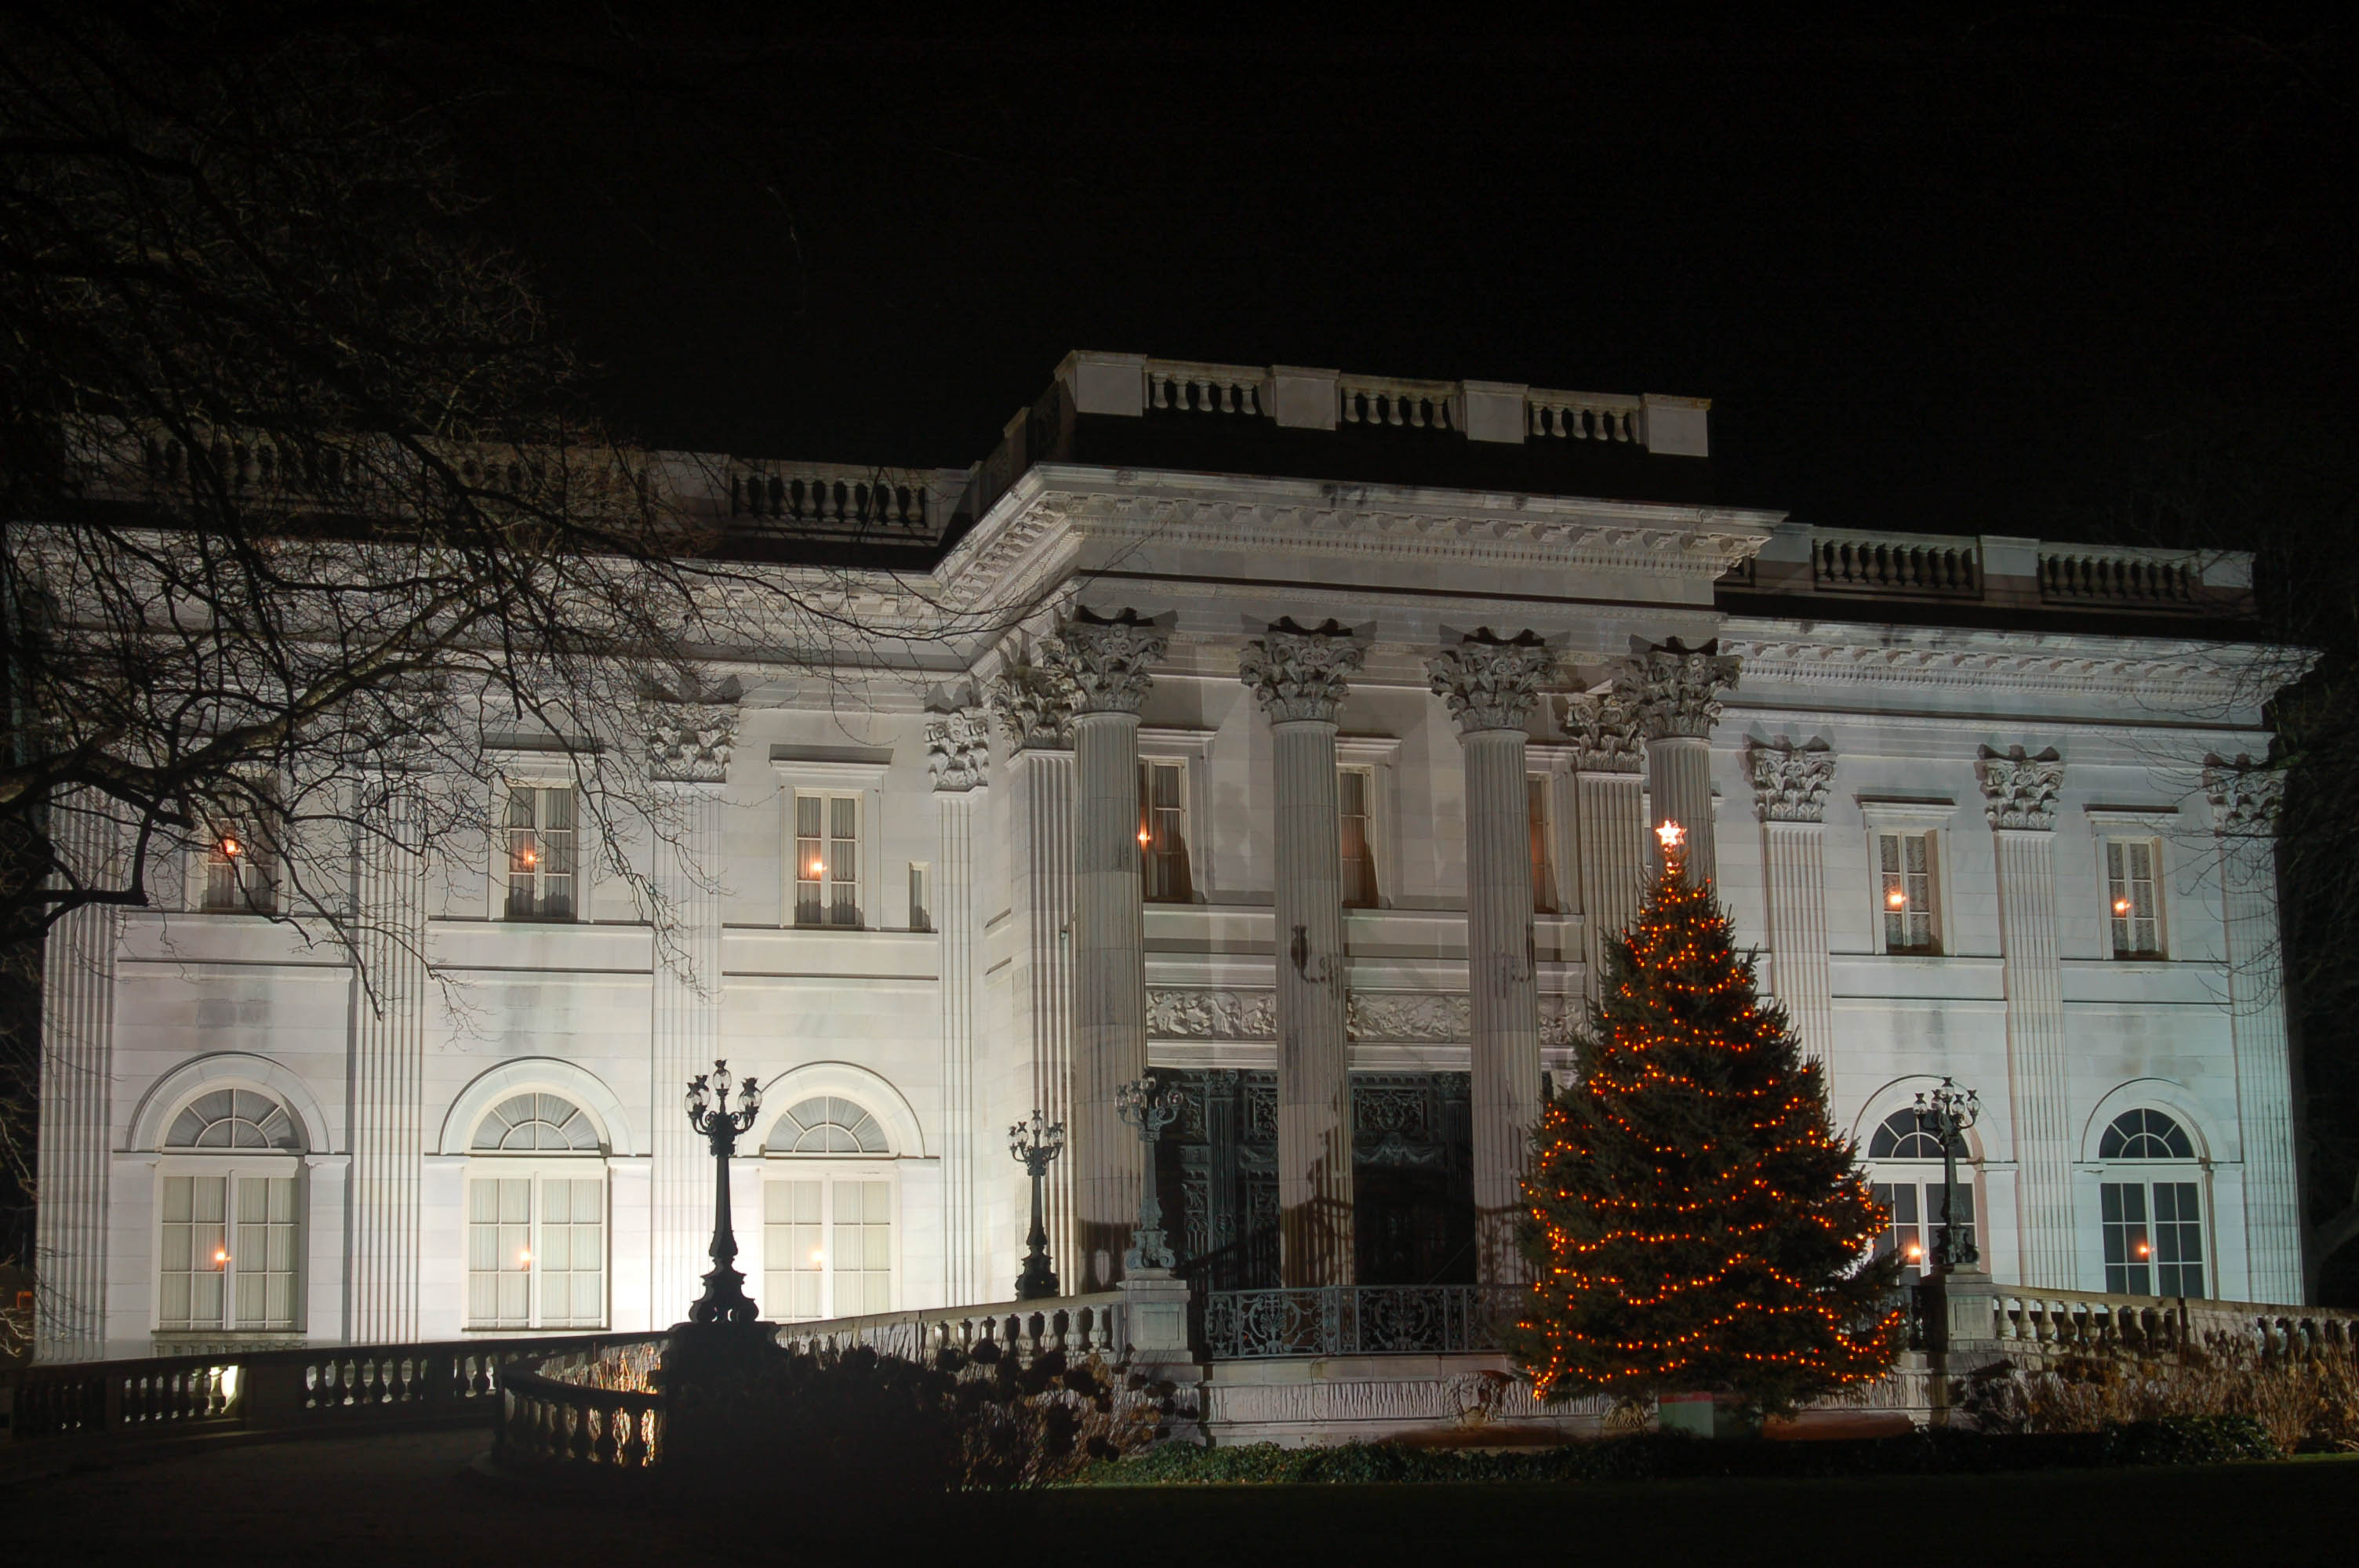 Christmas in Newport, Mansions at Night, 12/14/09